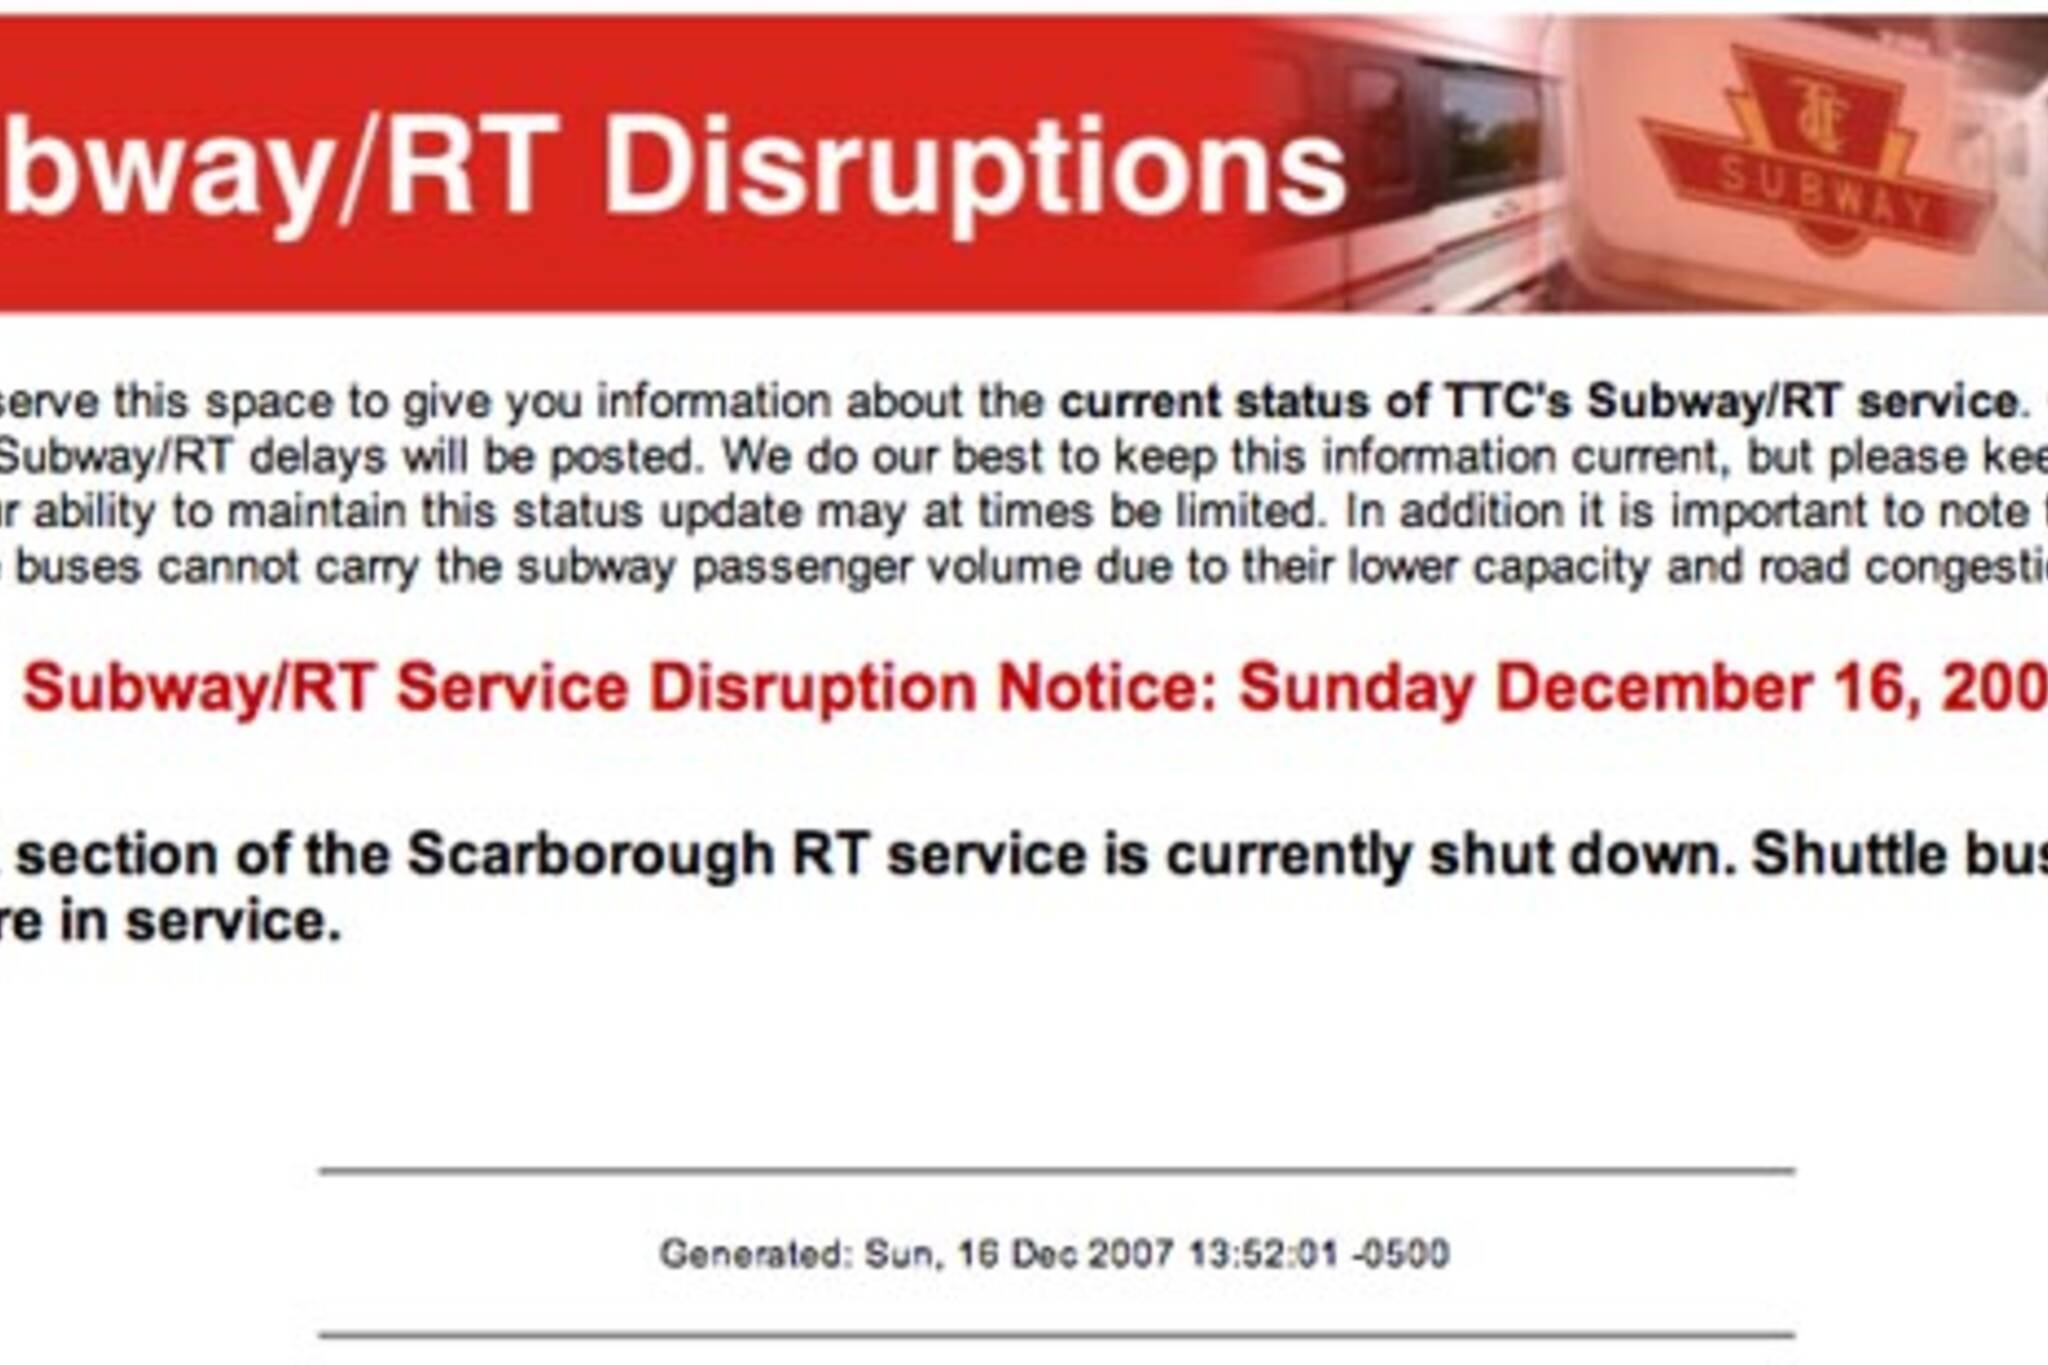 The TTC is not working, but the status page is